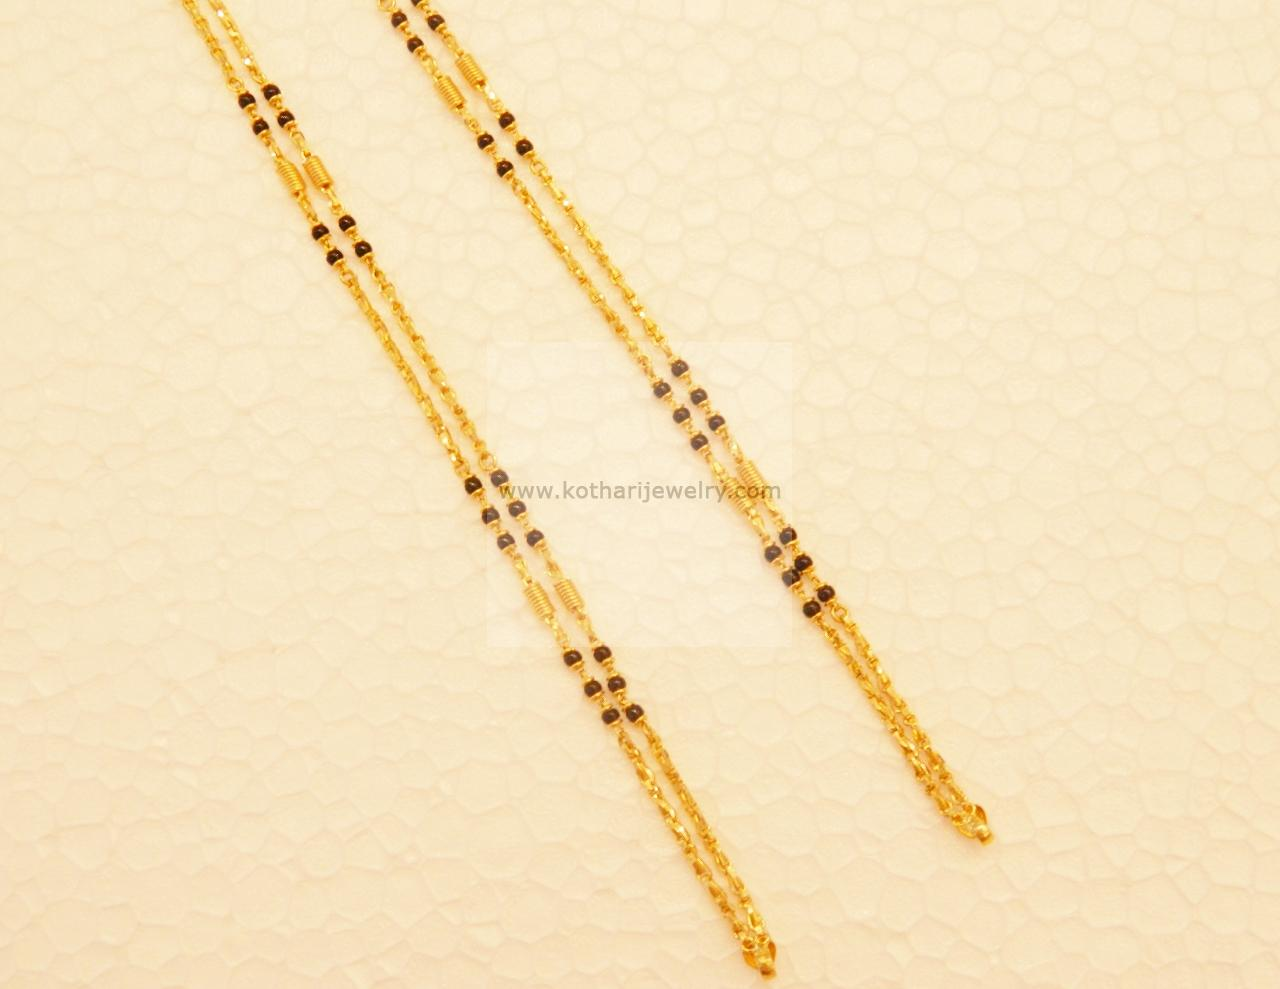 necklace cuban best photo curb chain the new karat link org of vidhayaksansad chains smooth gold solid jewelry tarnish